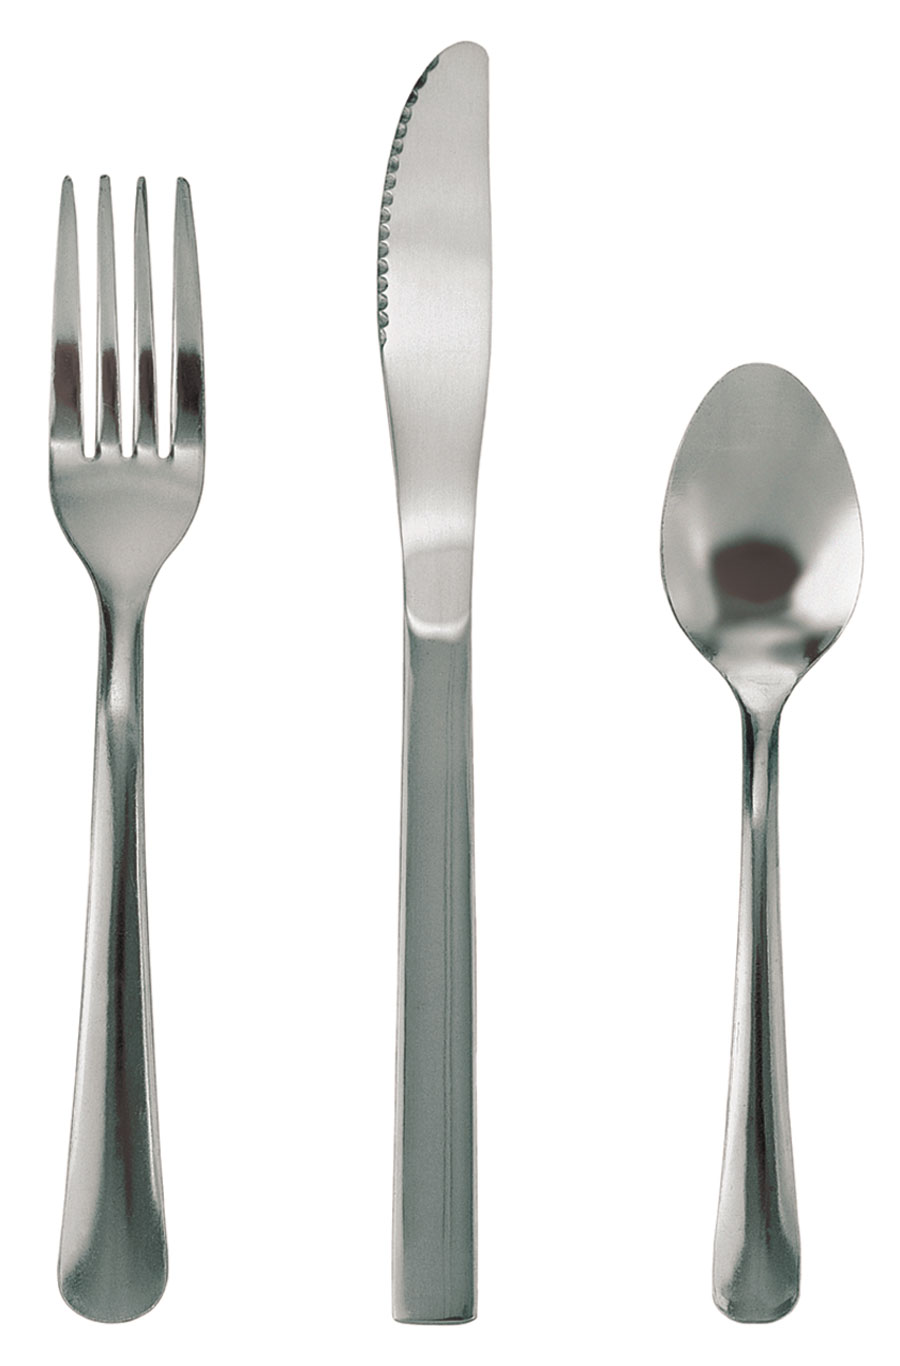 Update International WM / CP-33 Medium Weight Windsor Dessert Spoon in Clear Pack - 2 doz